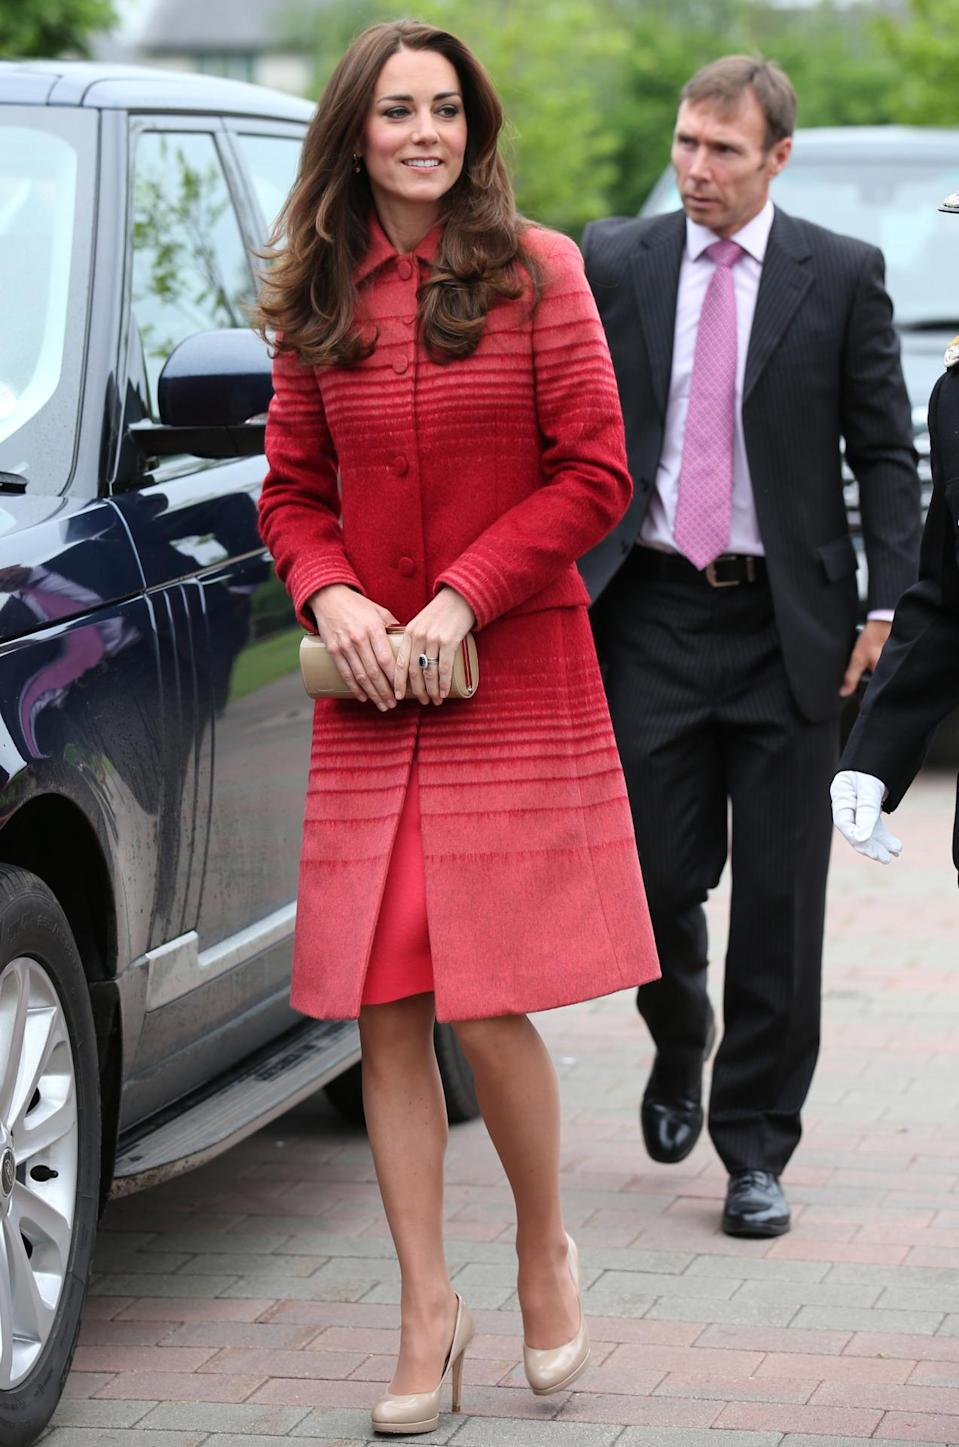 <p>Kate donned a red ombre coat by Jonathan Saunders for a day of engagements in Scotland. She paired the look with two favourites: a nude clutch and heels by L.K. Bennett. </p><p><i>[Photo: PA]</i></p>